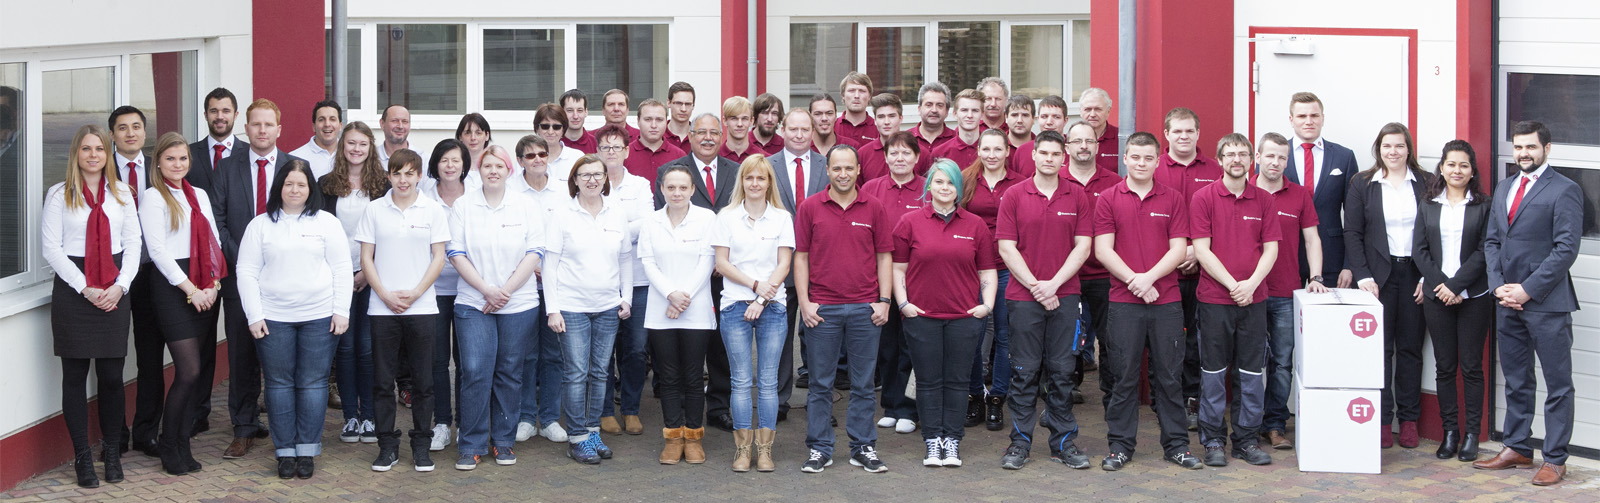 Team der ET Elastomer Technik GmbH